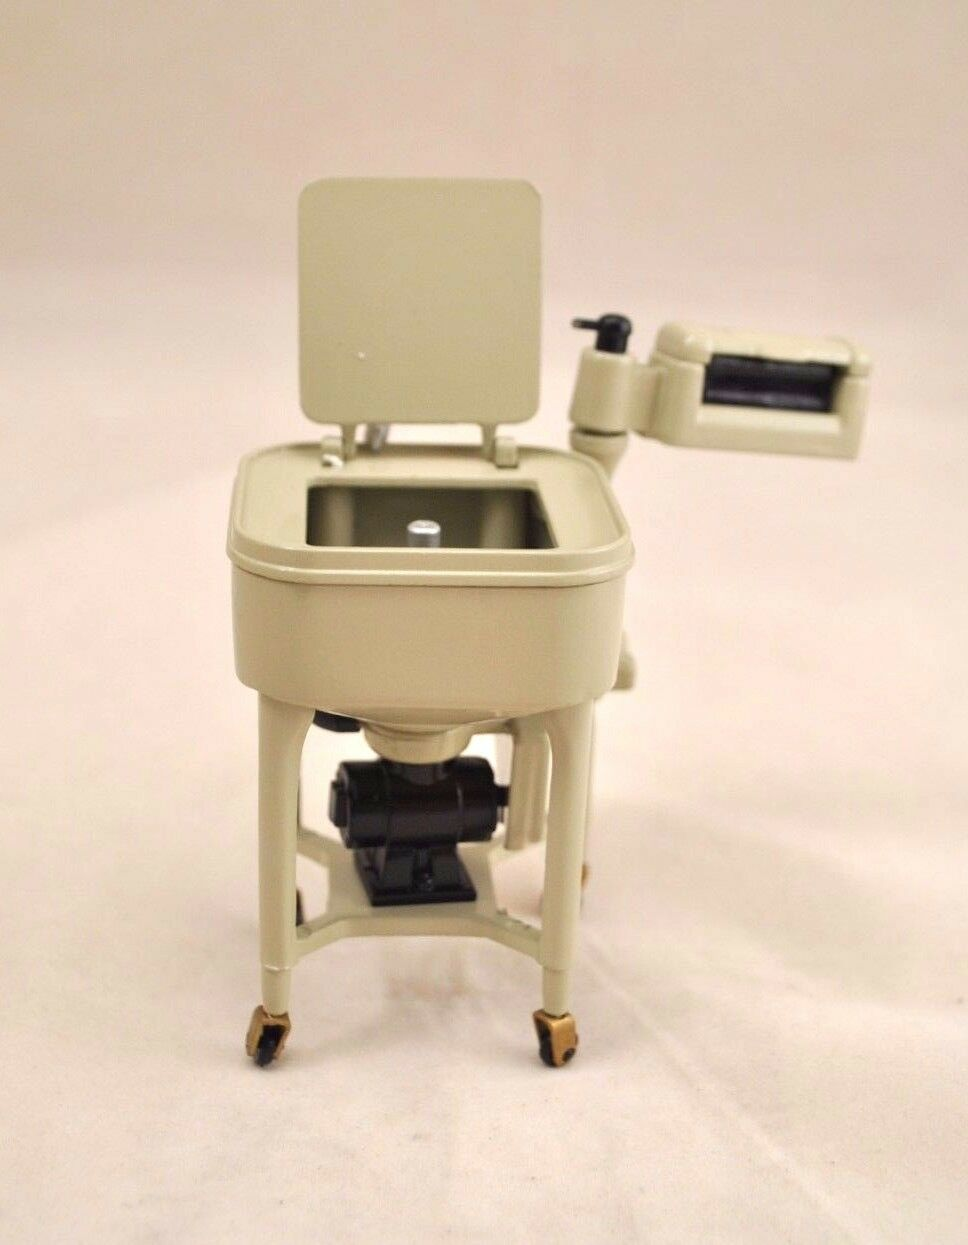 MAYTAG WRINGER WASHER 1930s - 1/12 scale metal  dollhouse miniature DDL7516